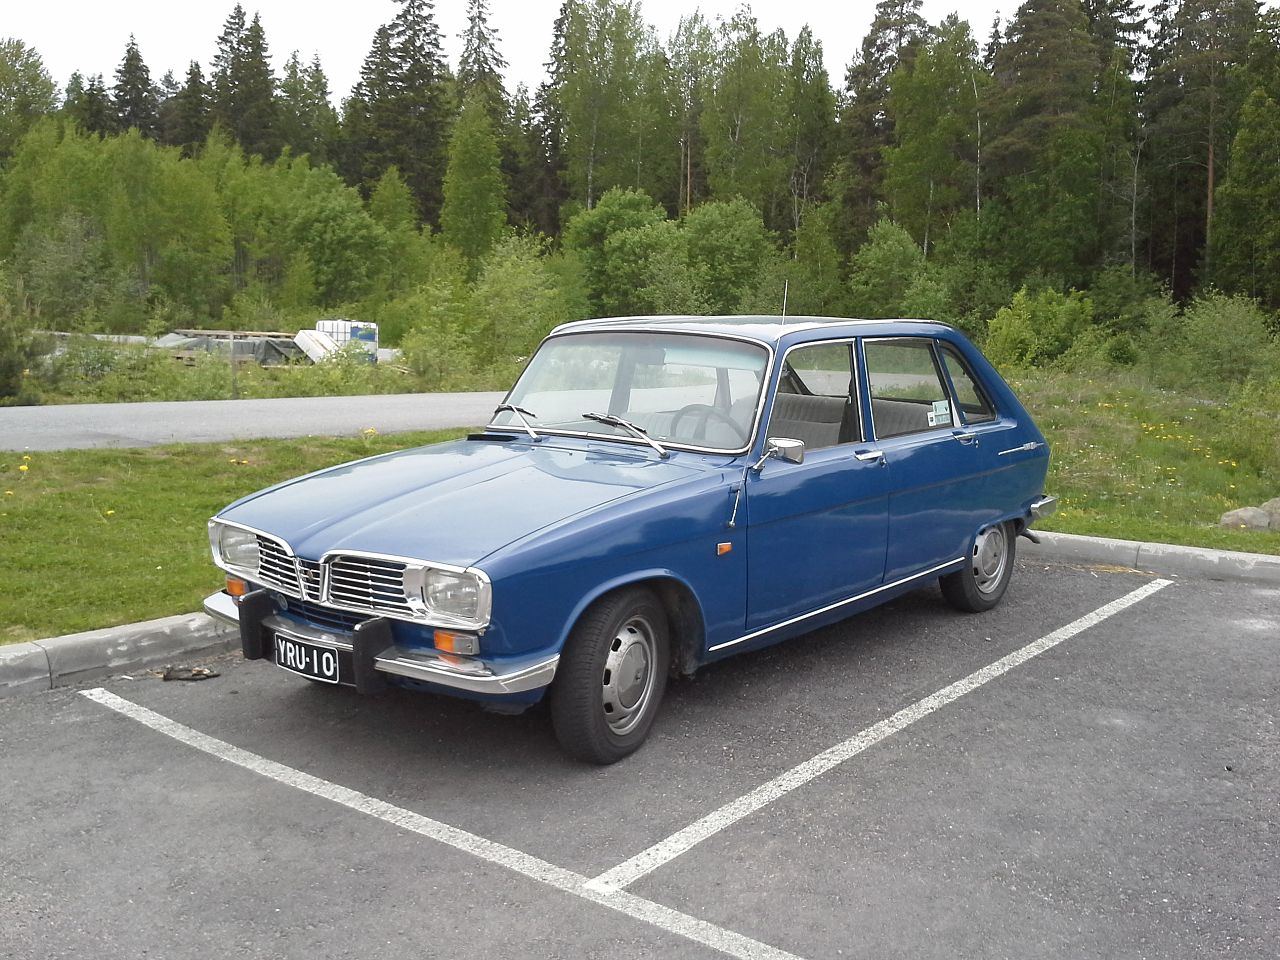 file blue renault 16 ts left wikimedia commons. Black Bedroom Furniture Sets. Home Design Ideas